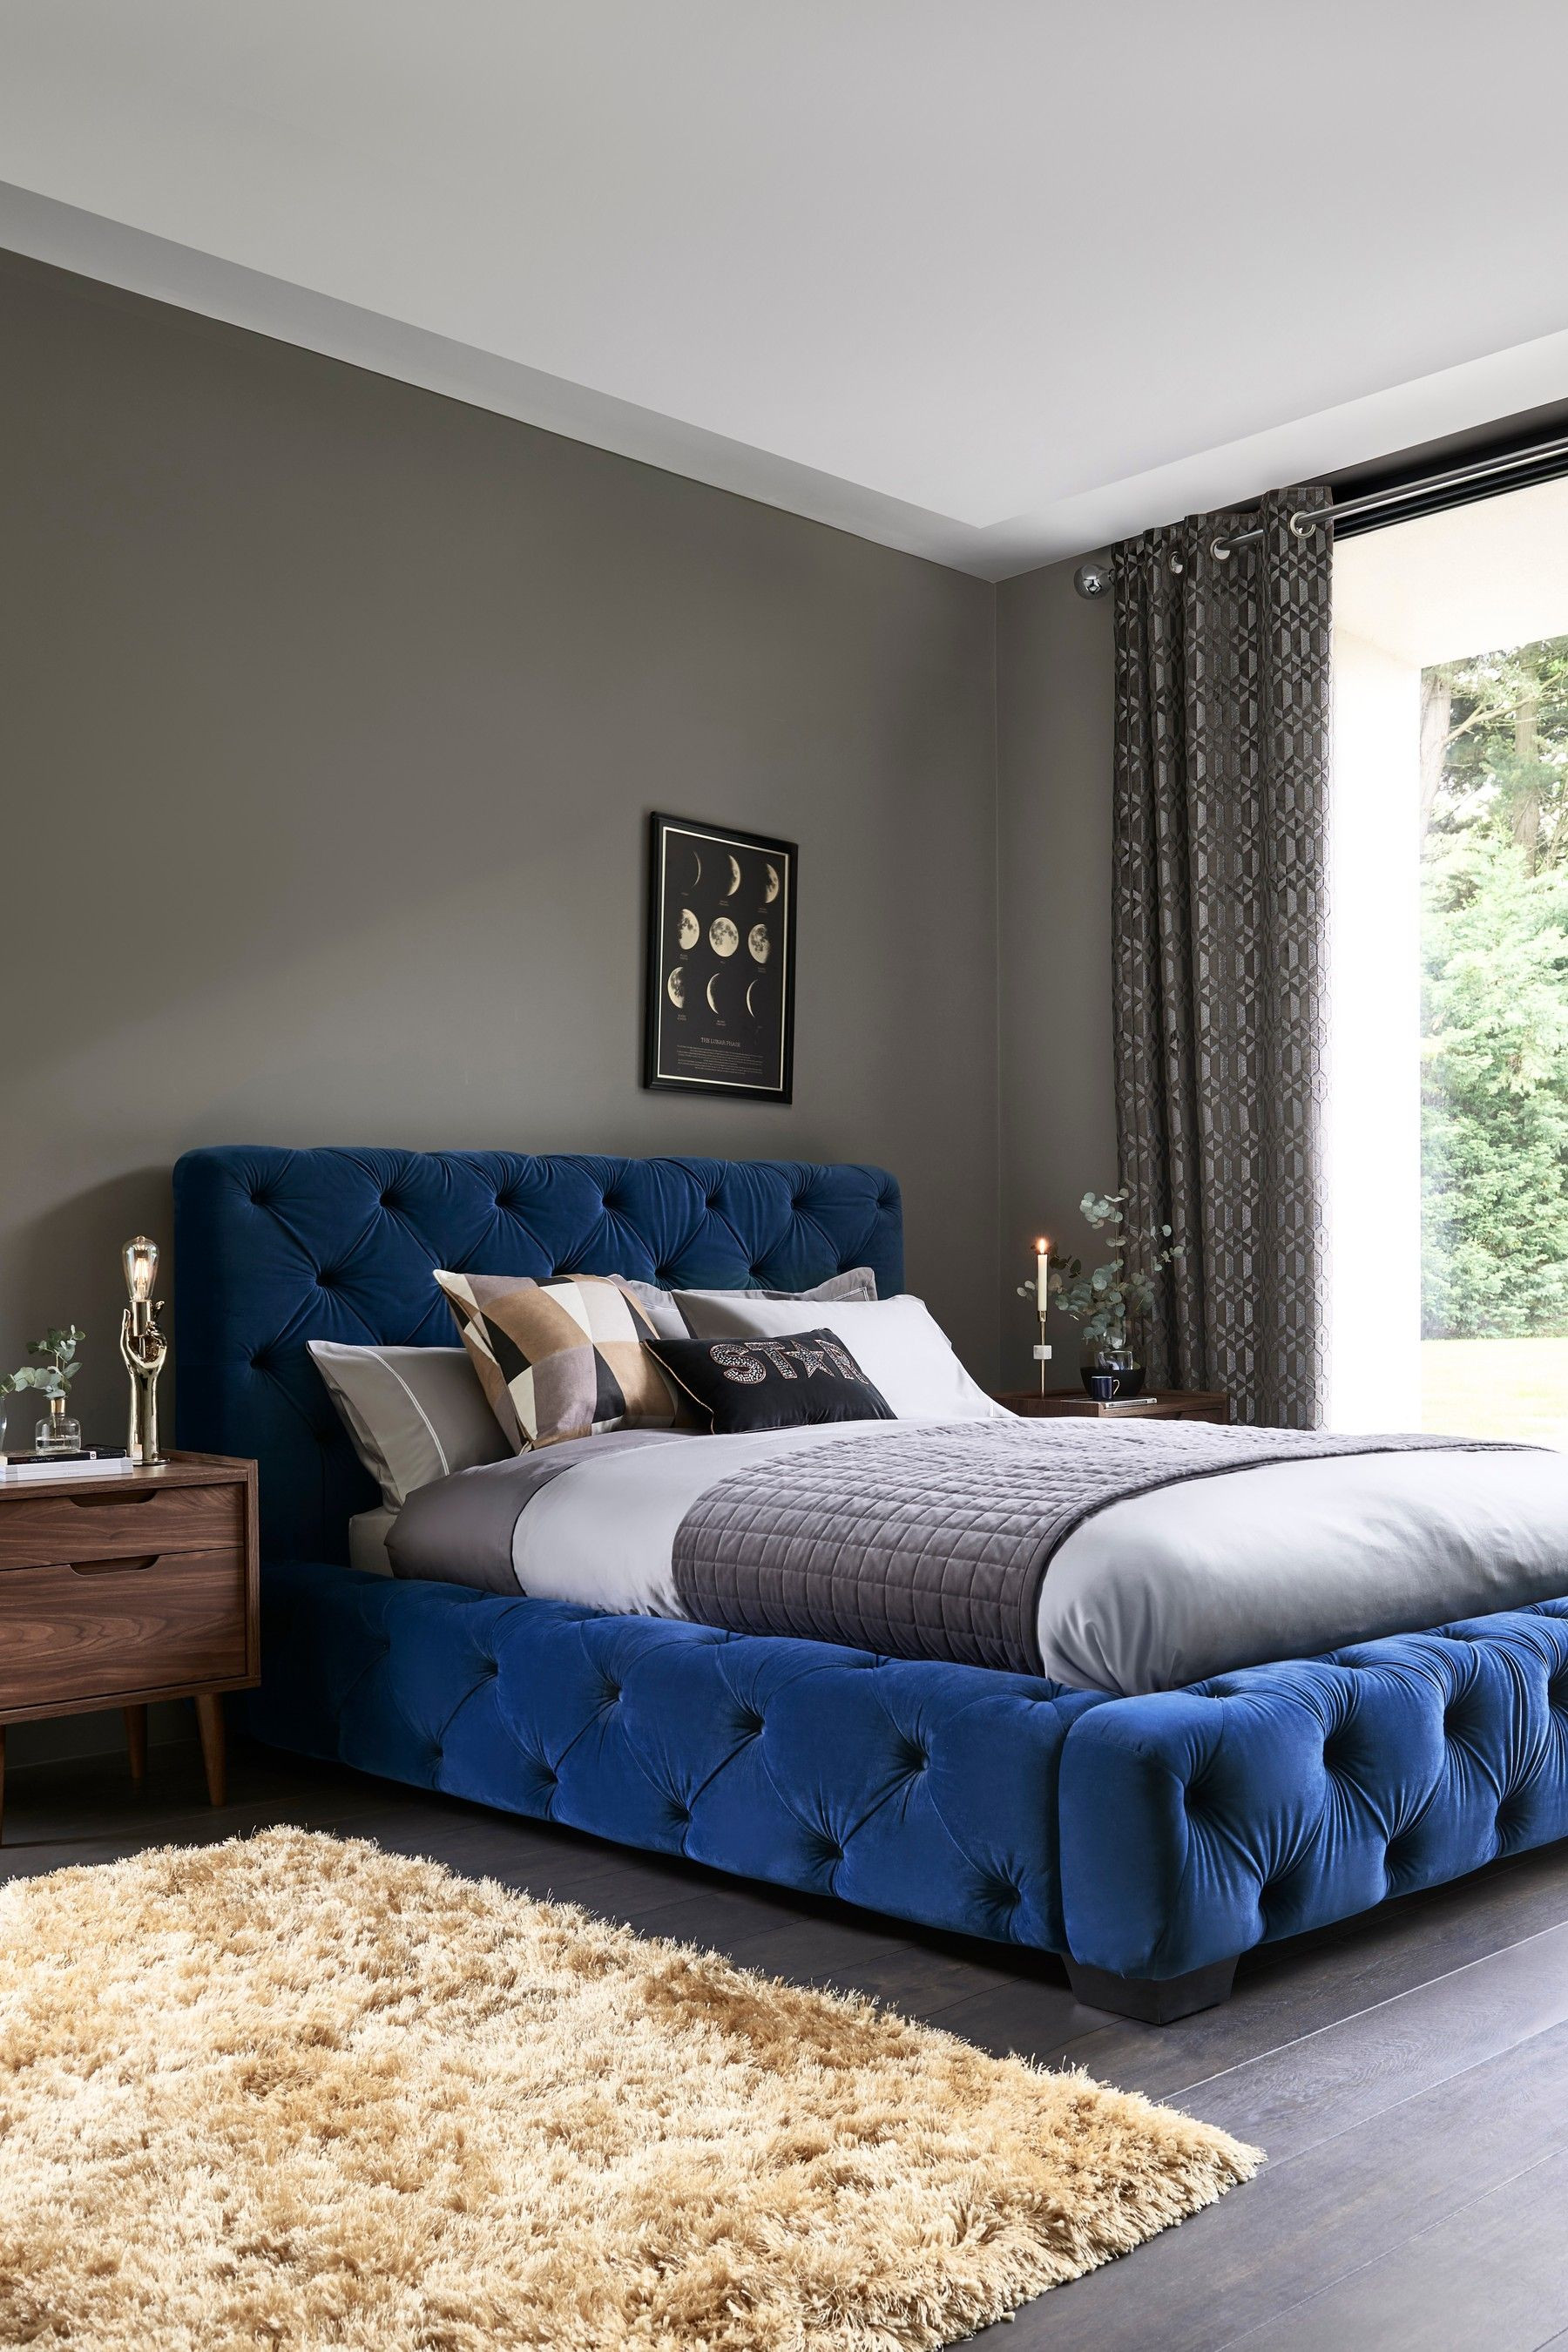 This buttoned bed from Next looks so luxurious bed blue